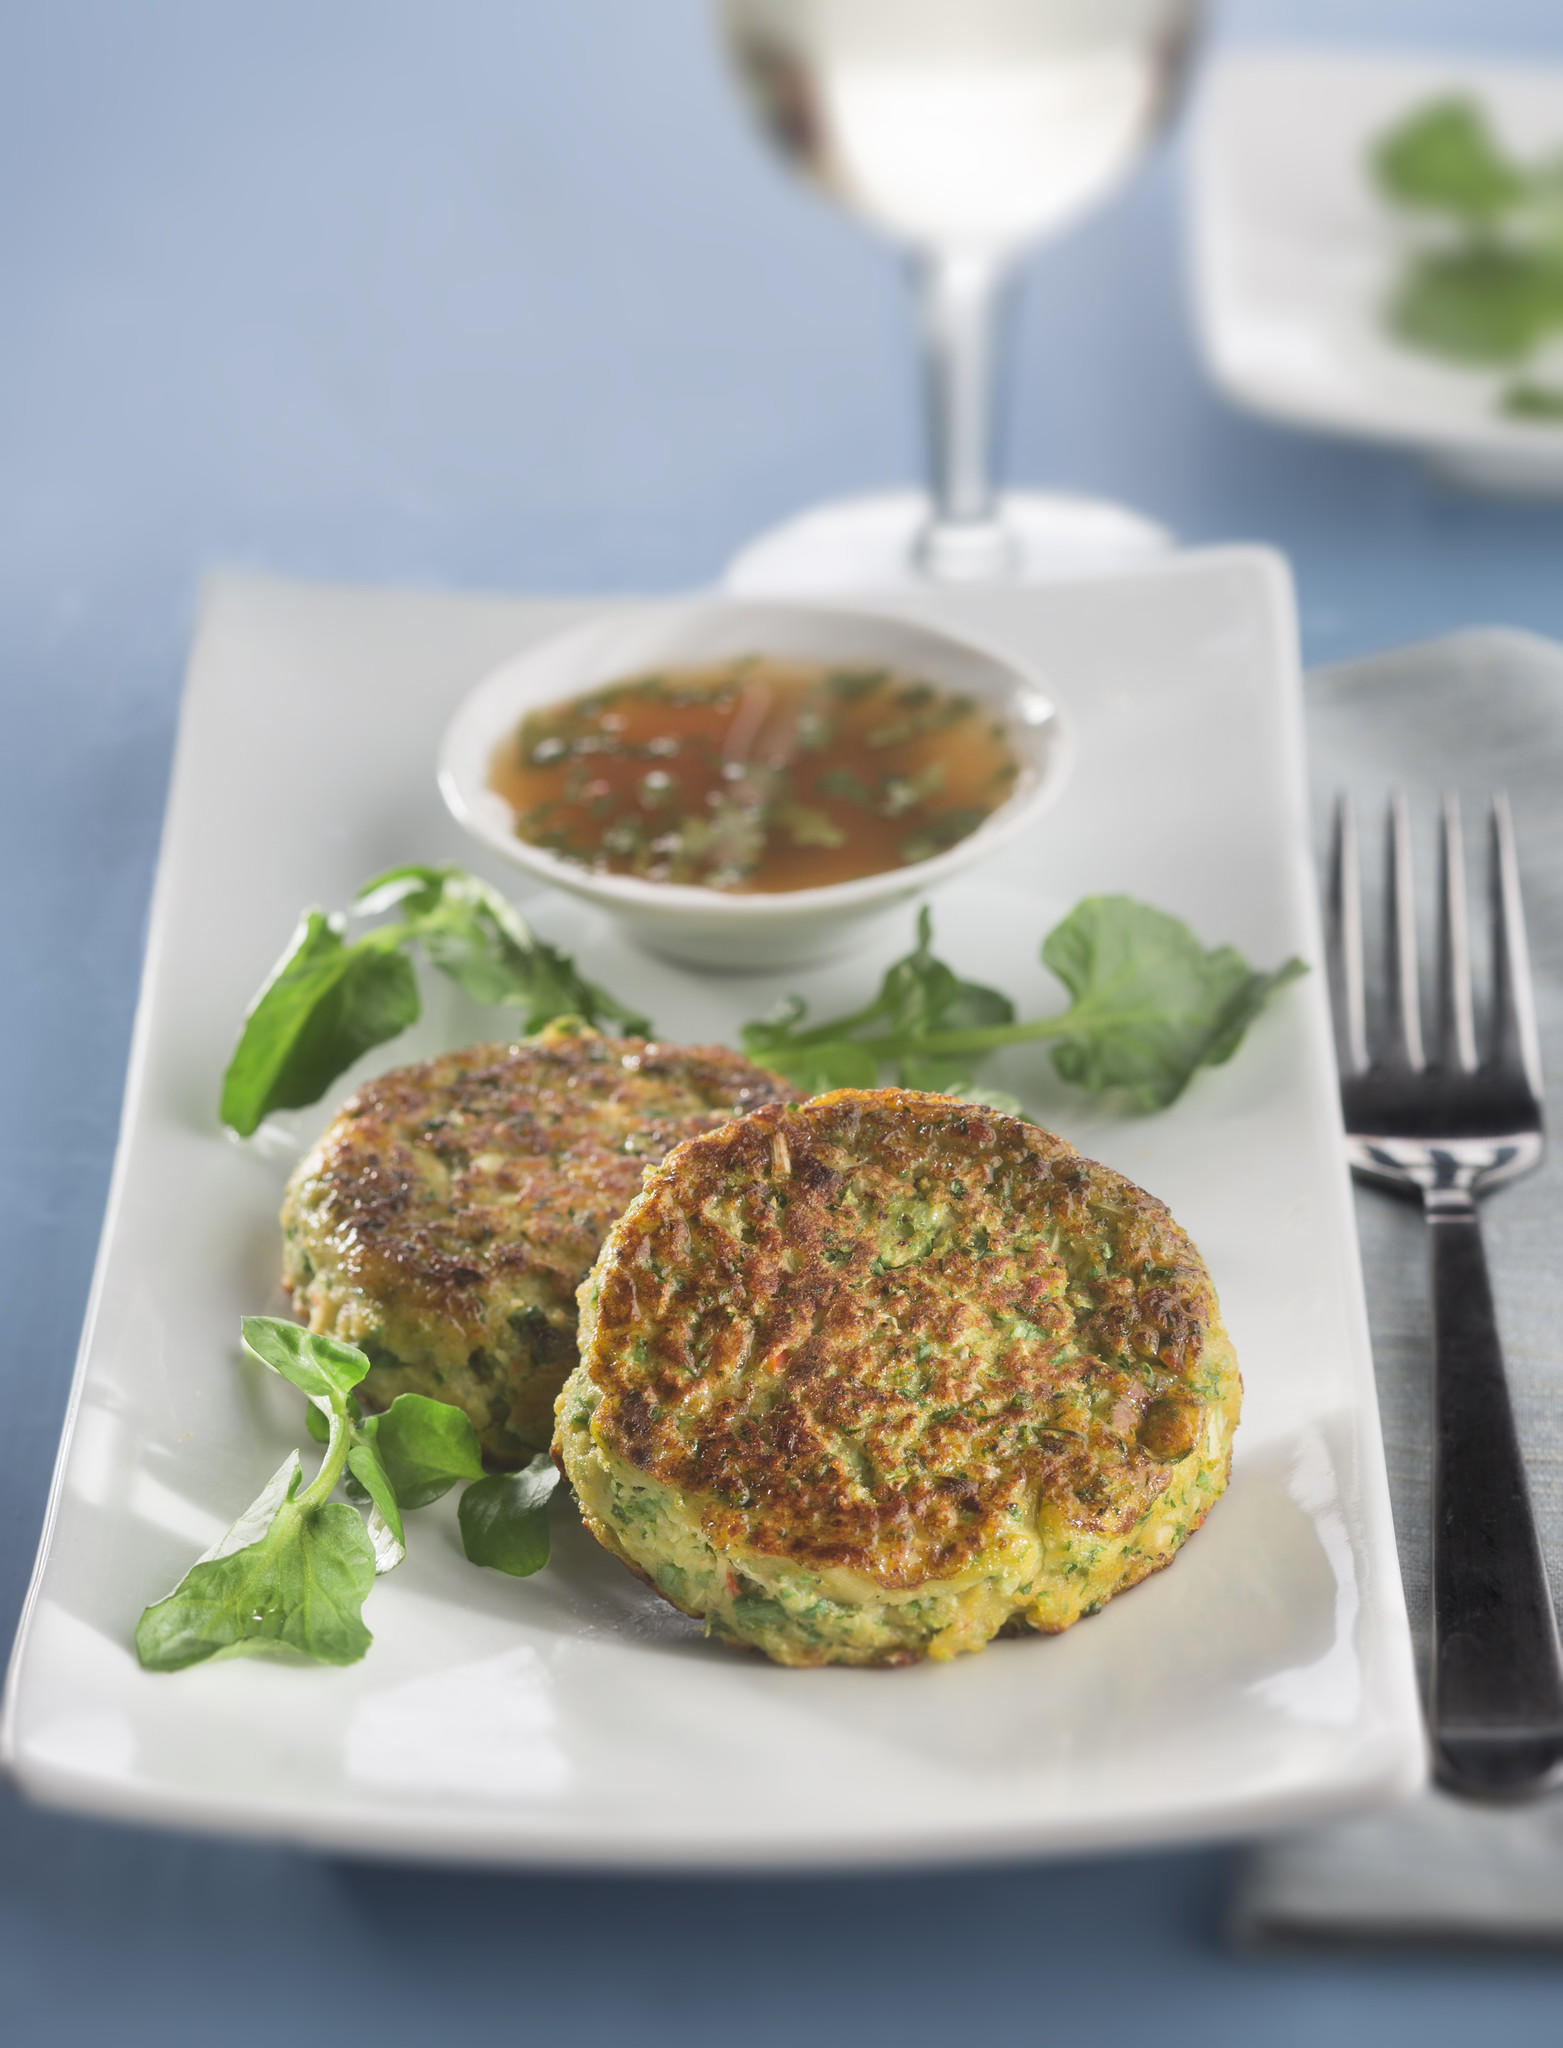 Fish cakes for Lent.